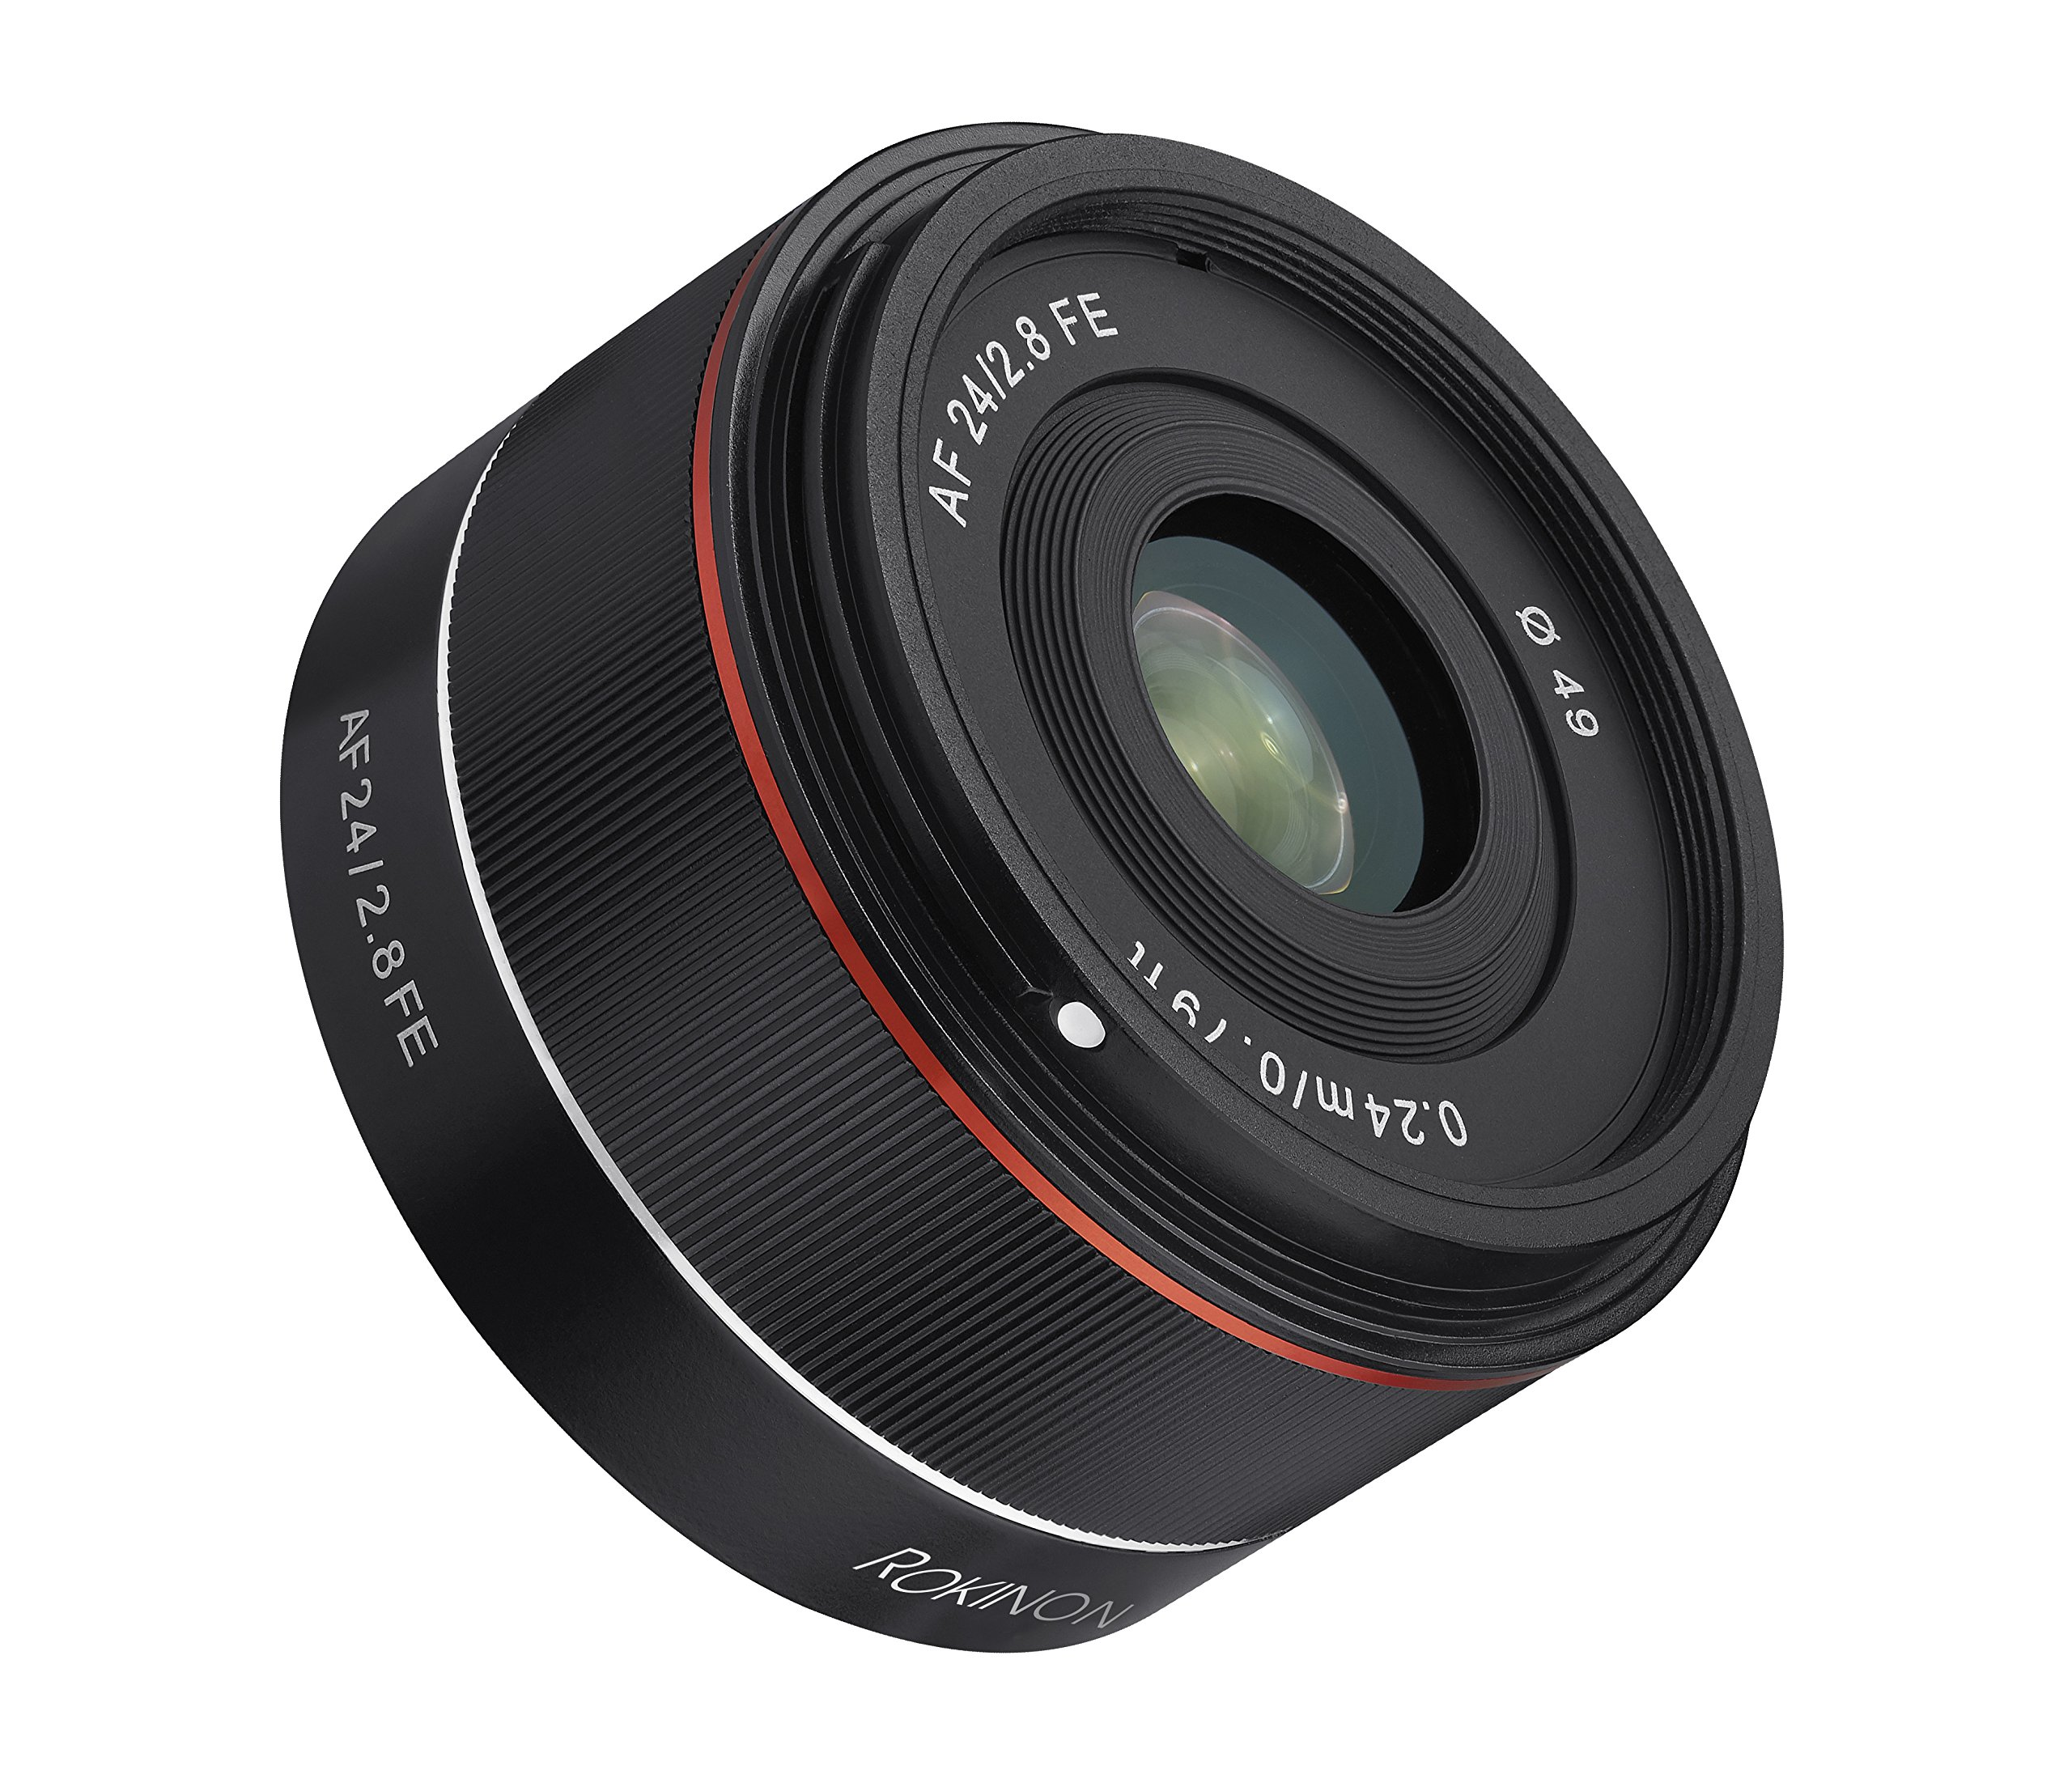 Rokinon AF 24mm f/2.8 Wide Angle Auto Focus Lens for Sony E-Mount, Black by Rokinon